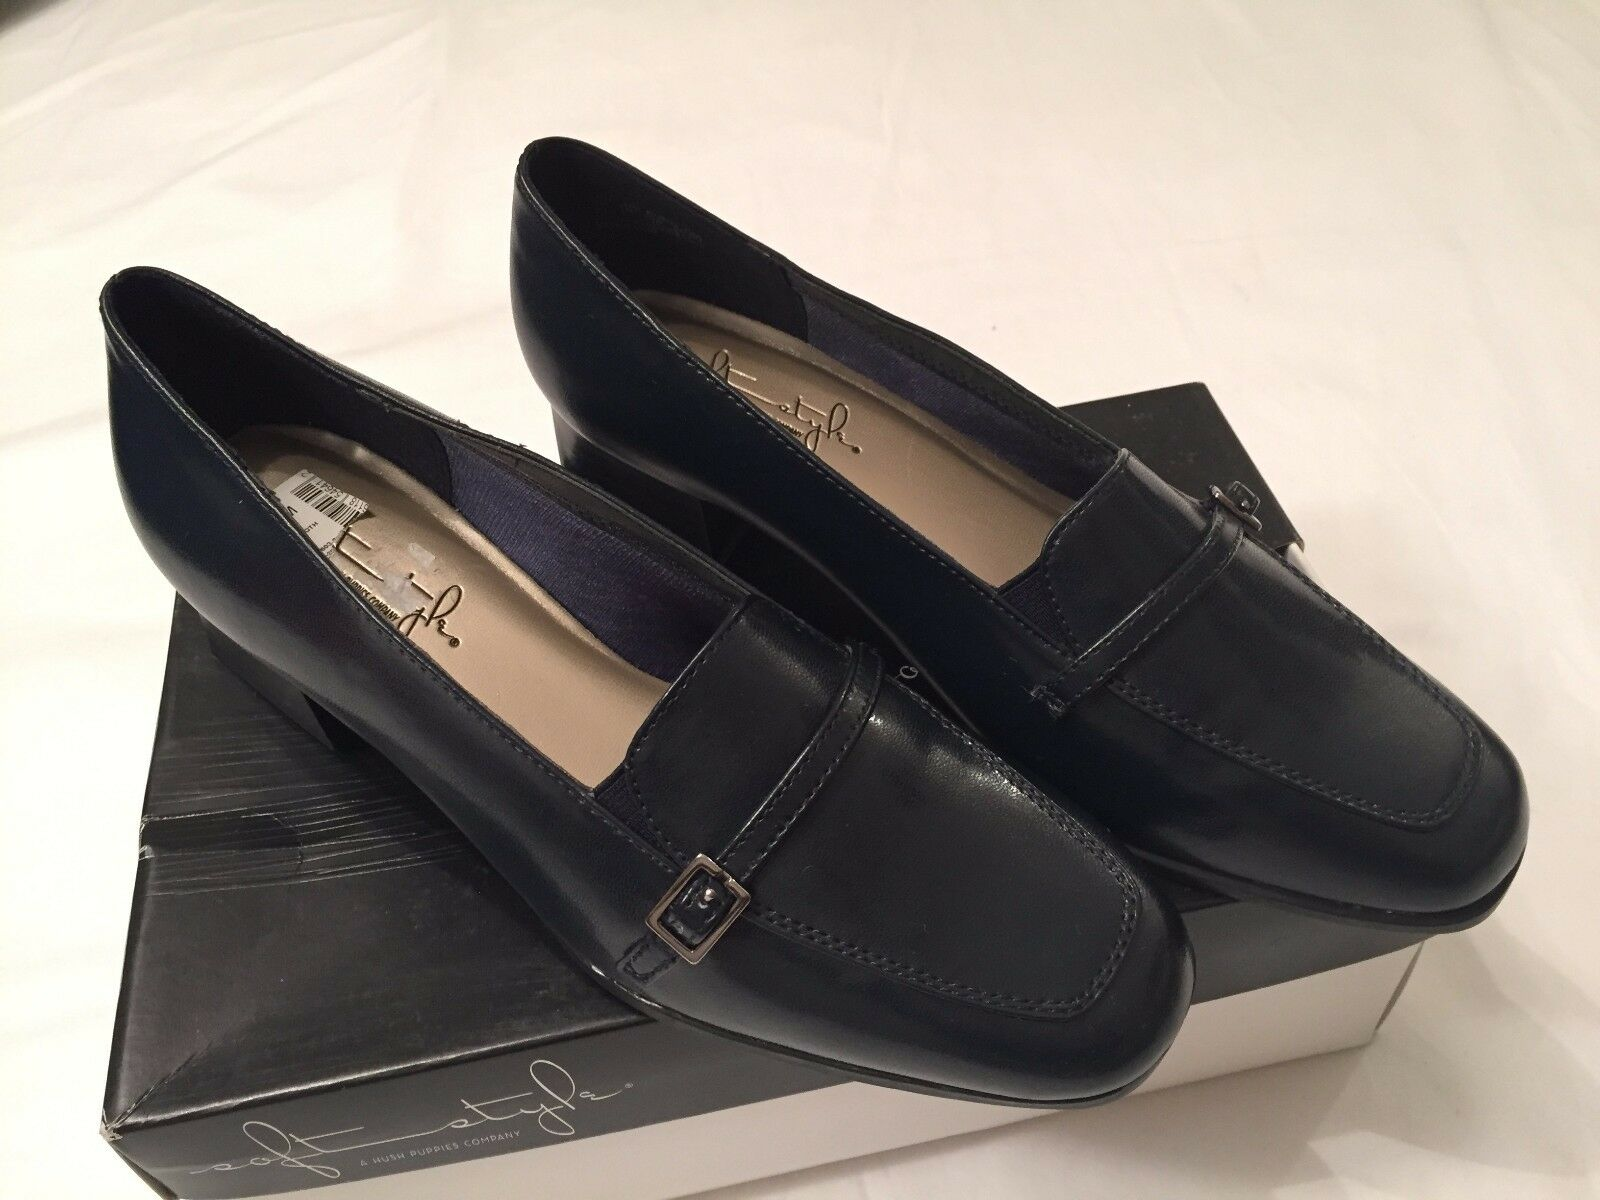 Soft Style by Hush Puppies Femme'S Robe Chaussures Glide style 74871 Bleu Marine Lisse Sz5